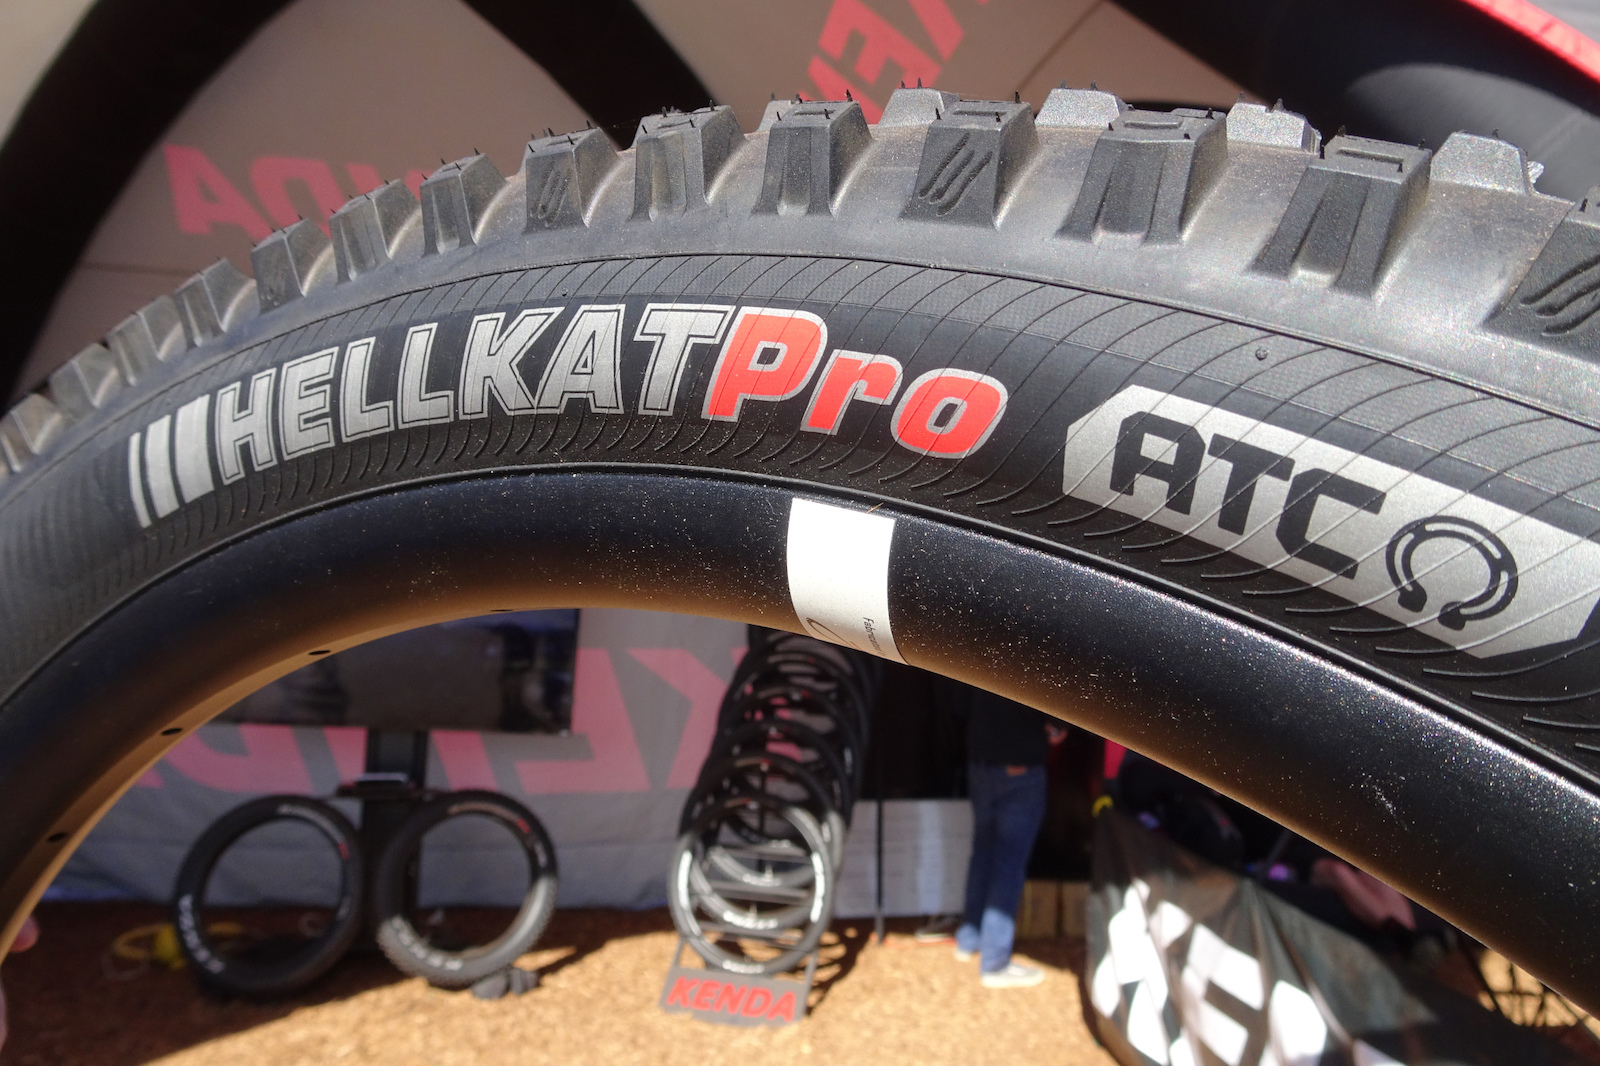 "Kenda Hellkat Pro: This is the trail version of the DH tire Aaron Gwin is now riding. ""AGT"" (Advanced Gravity Casing) is the designation for the double-reinforced downhill model. This one has the lighter weight ATC (Advanced Trail Casing), which shares the same aggressive tread profile."